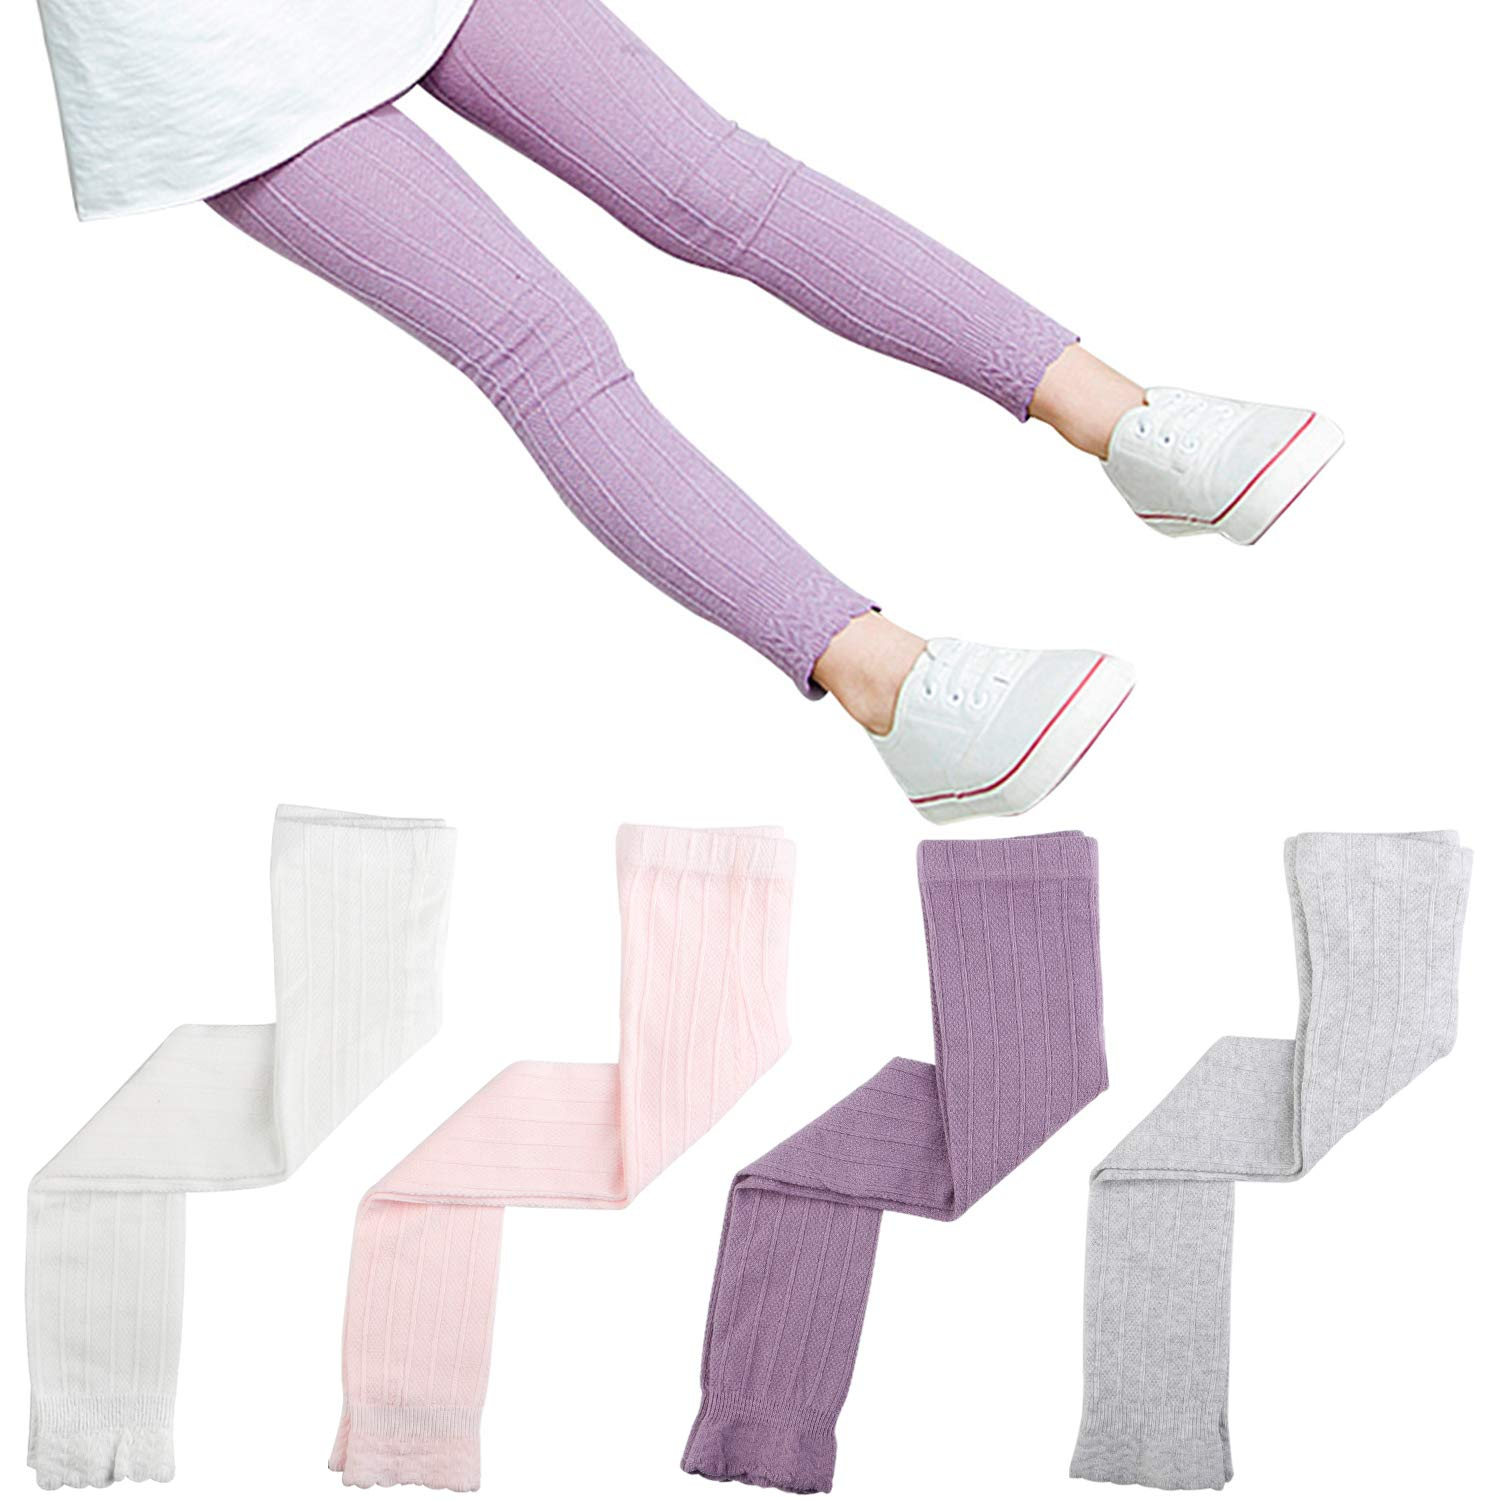 Auranso Girls Leggings Footless Tights 4 Pack Baby Girl Knit Pants Cotton Lace Trim Pantyhose Stocking for Toddler 1-7 Years